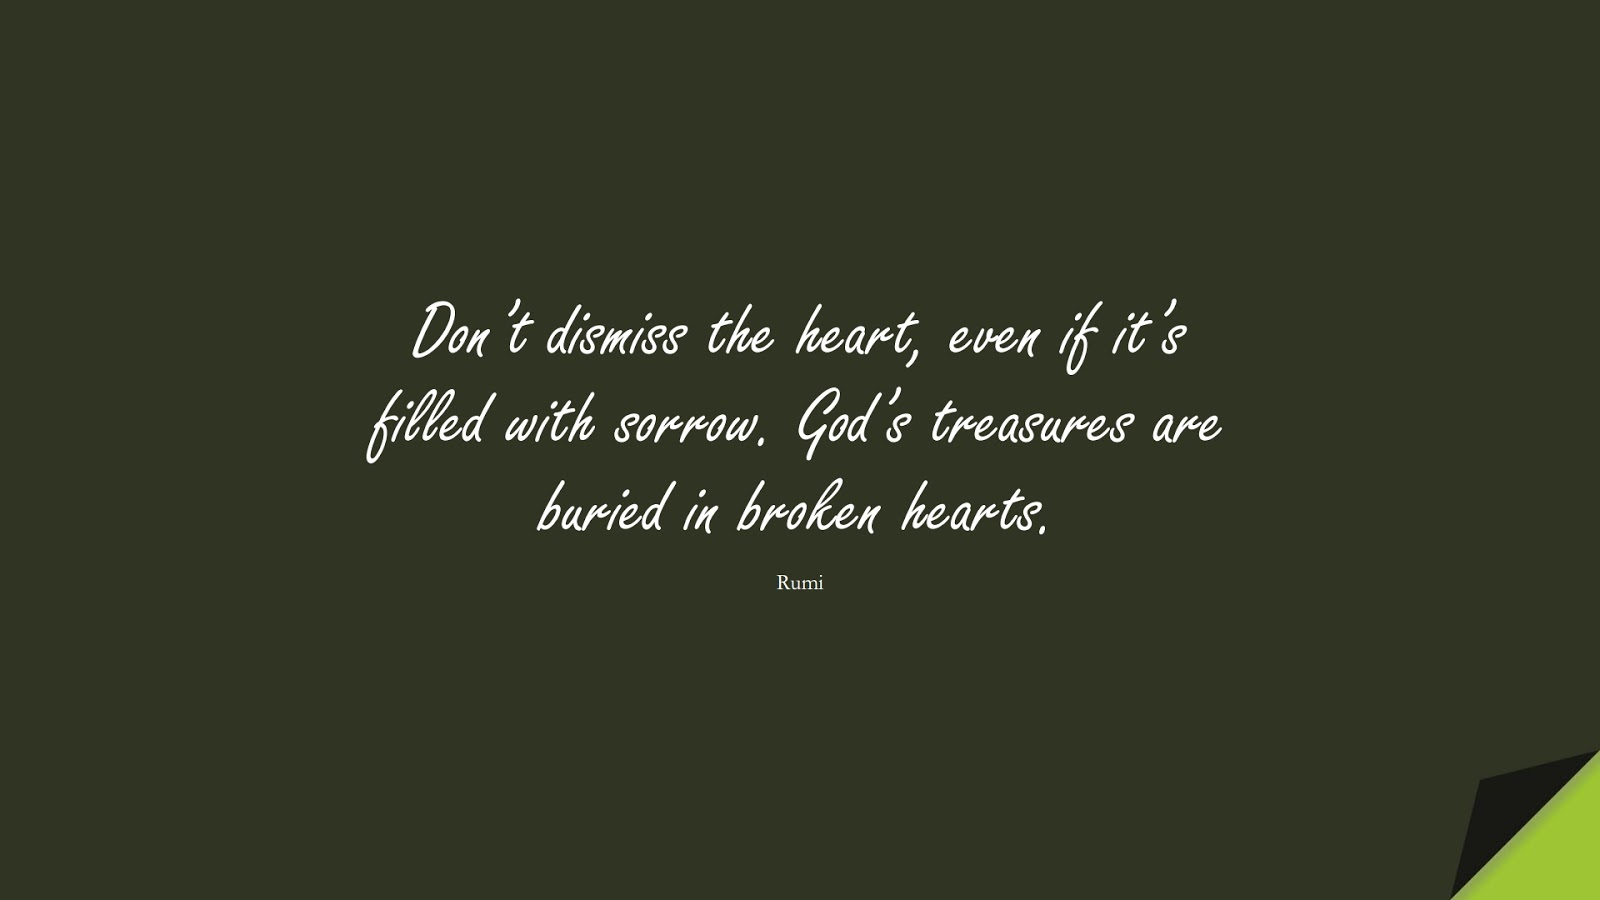 Don't dismiss the heart, even if it's filled with sorrow. God's treasures are buried in broken hearts. (Rumi);  #RumiQuotes